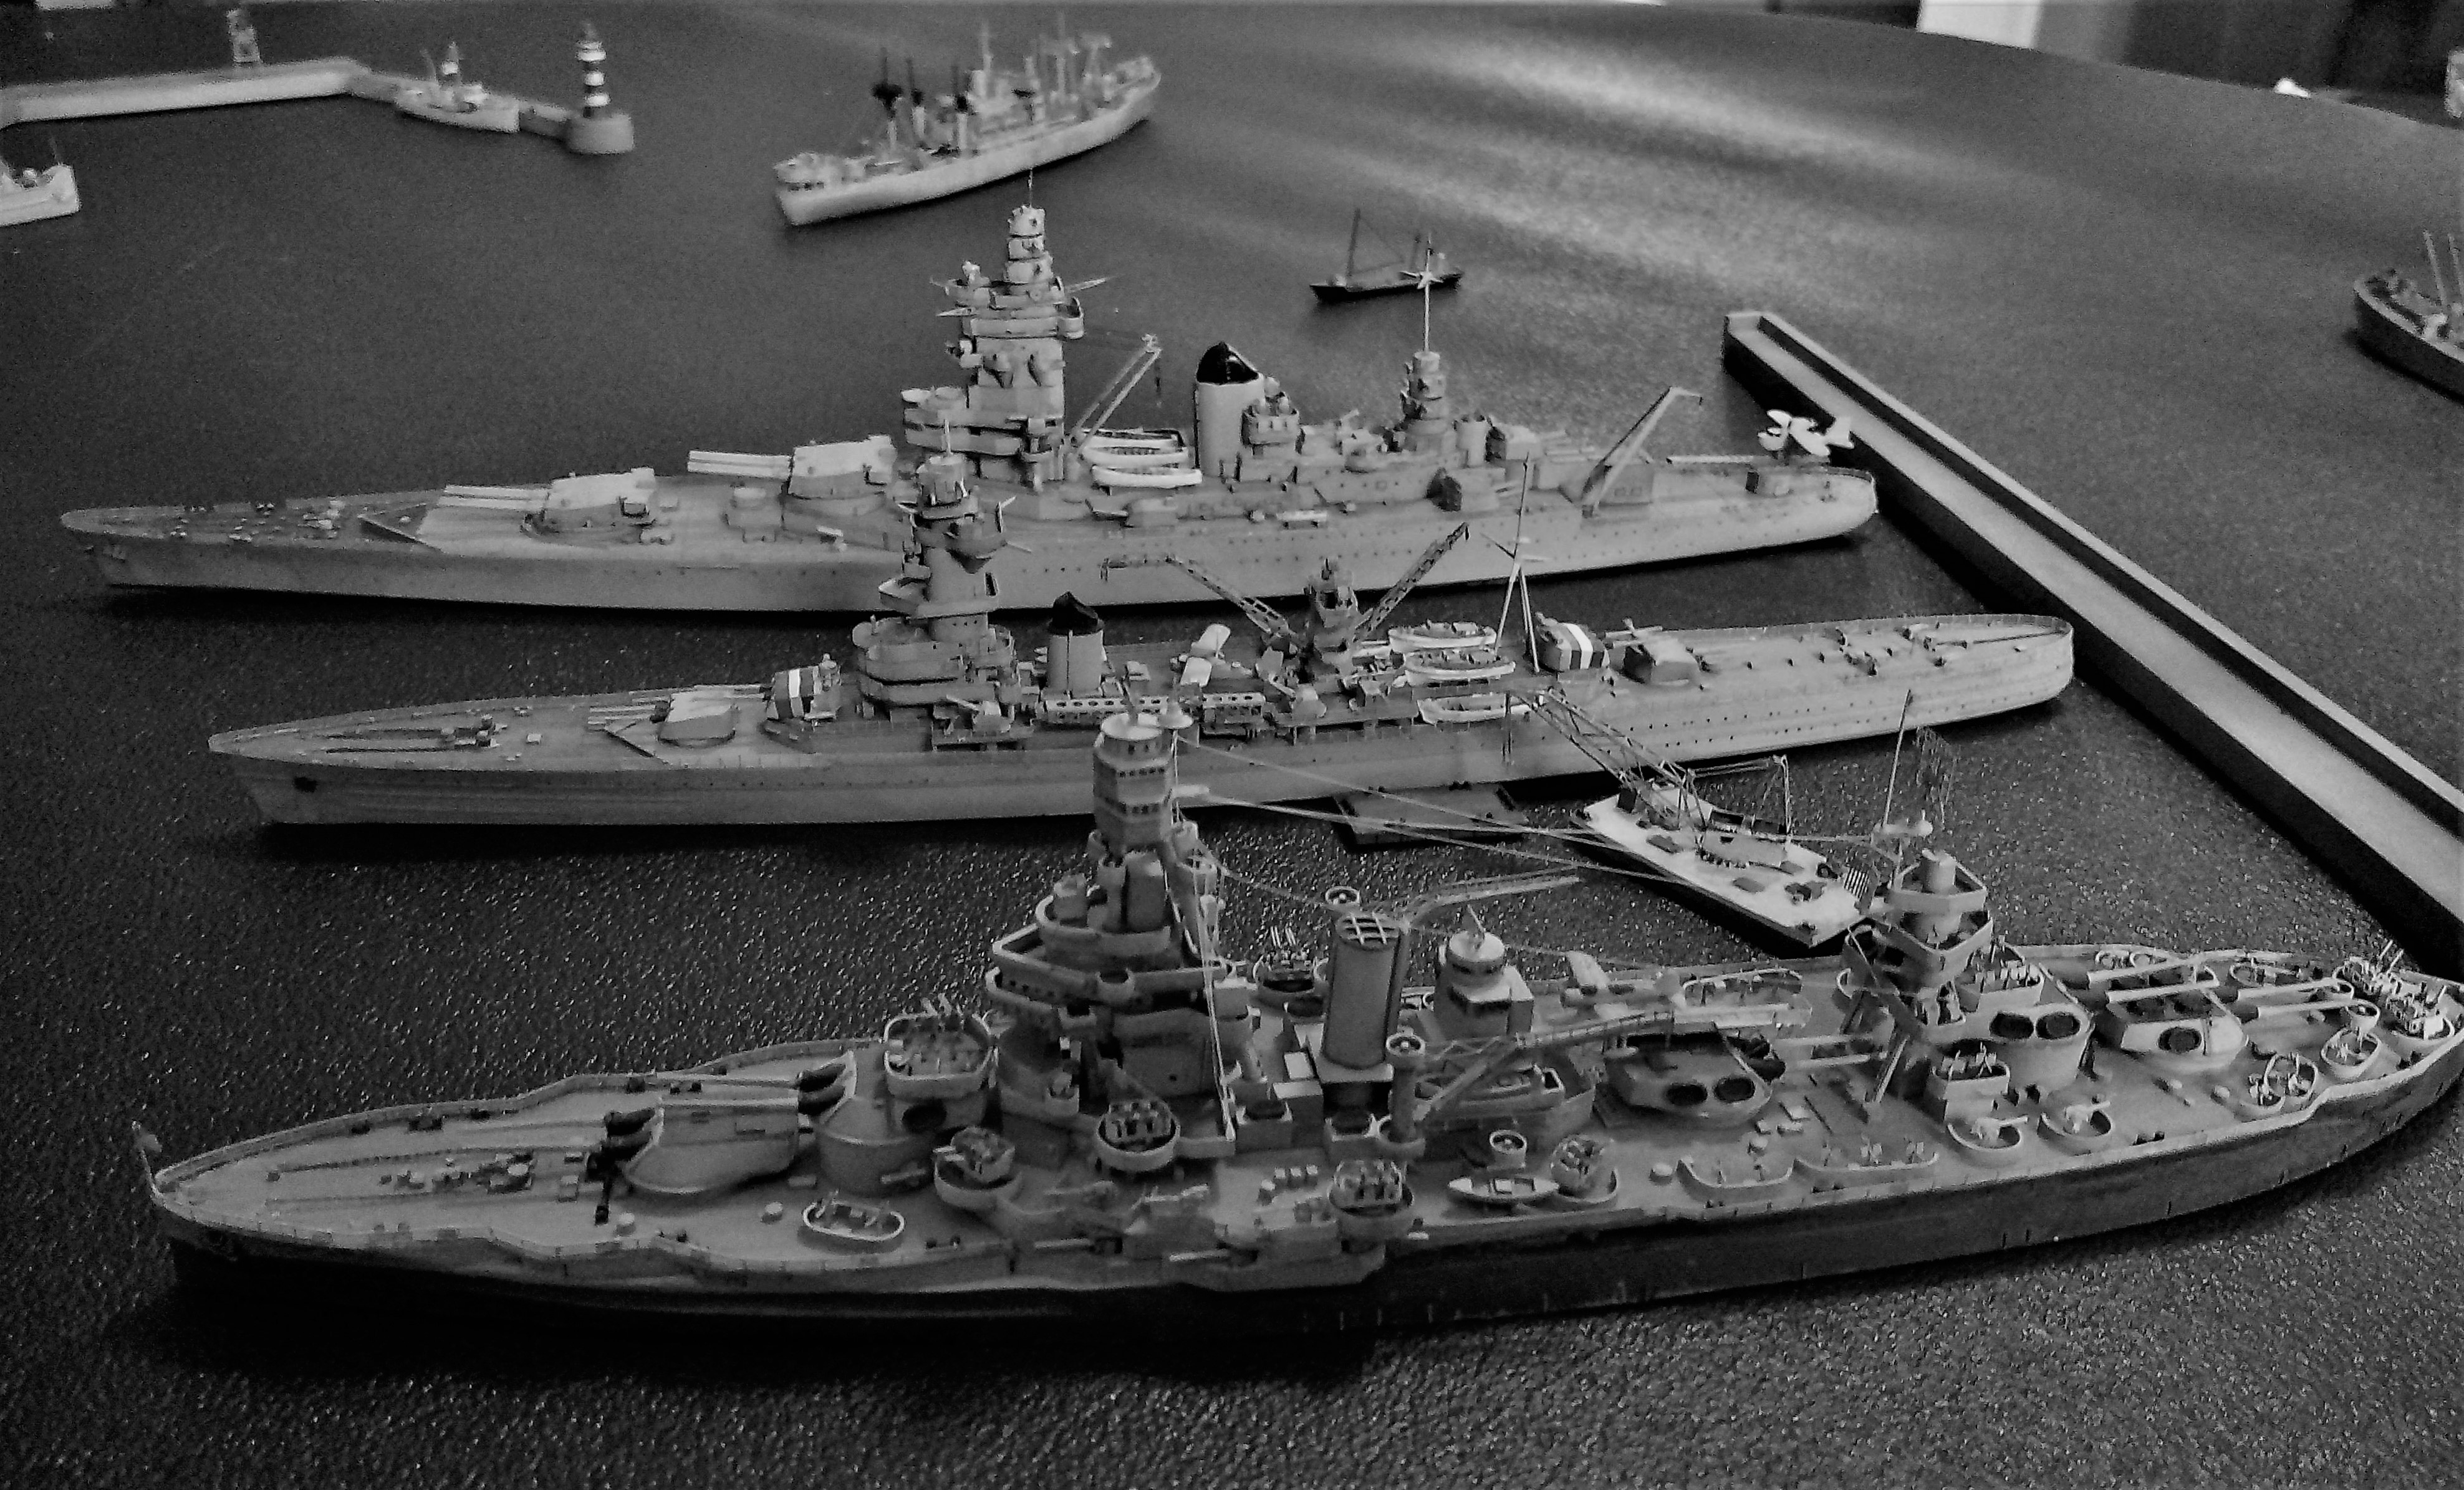 Diorama base navale 1/700 - Page 4 CgNKVuF68